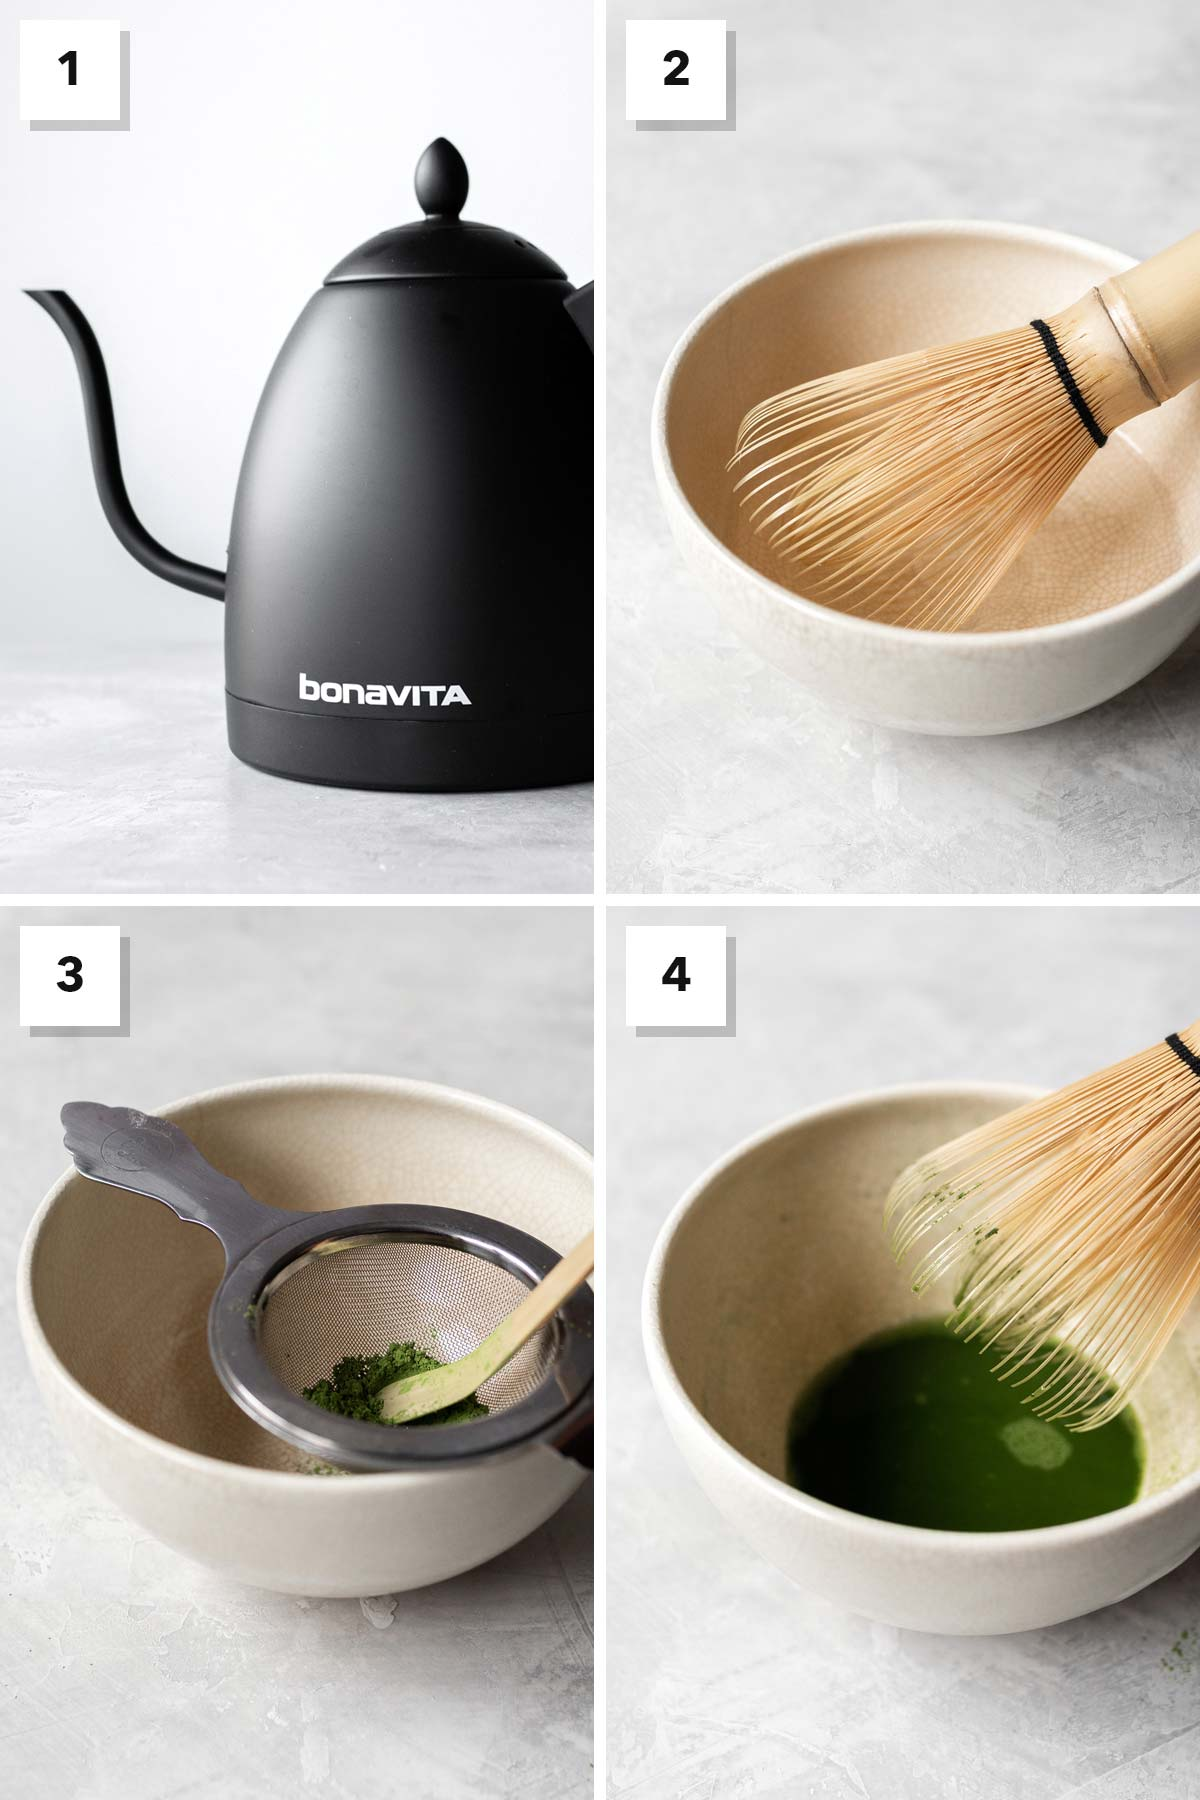 Four image collage showing steps to make matcha.